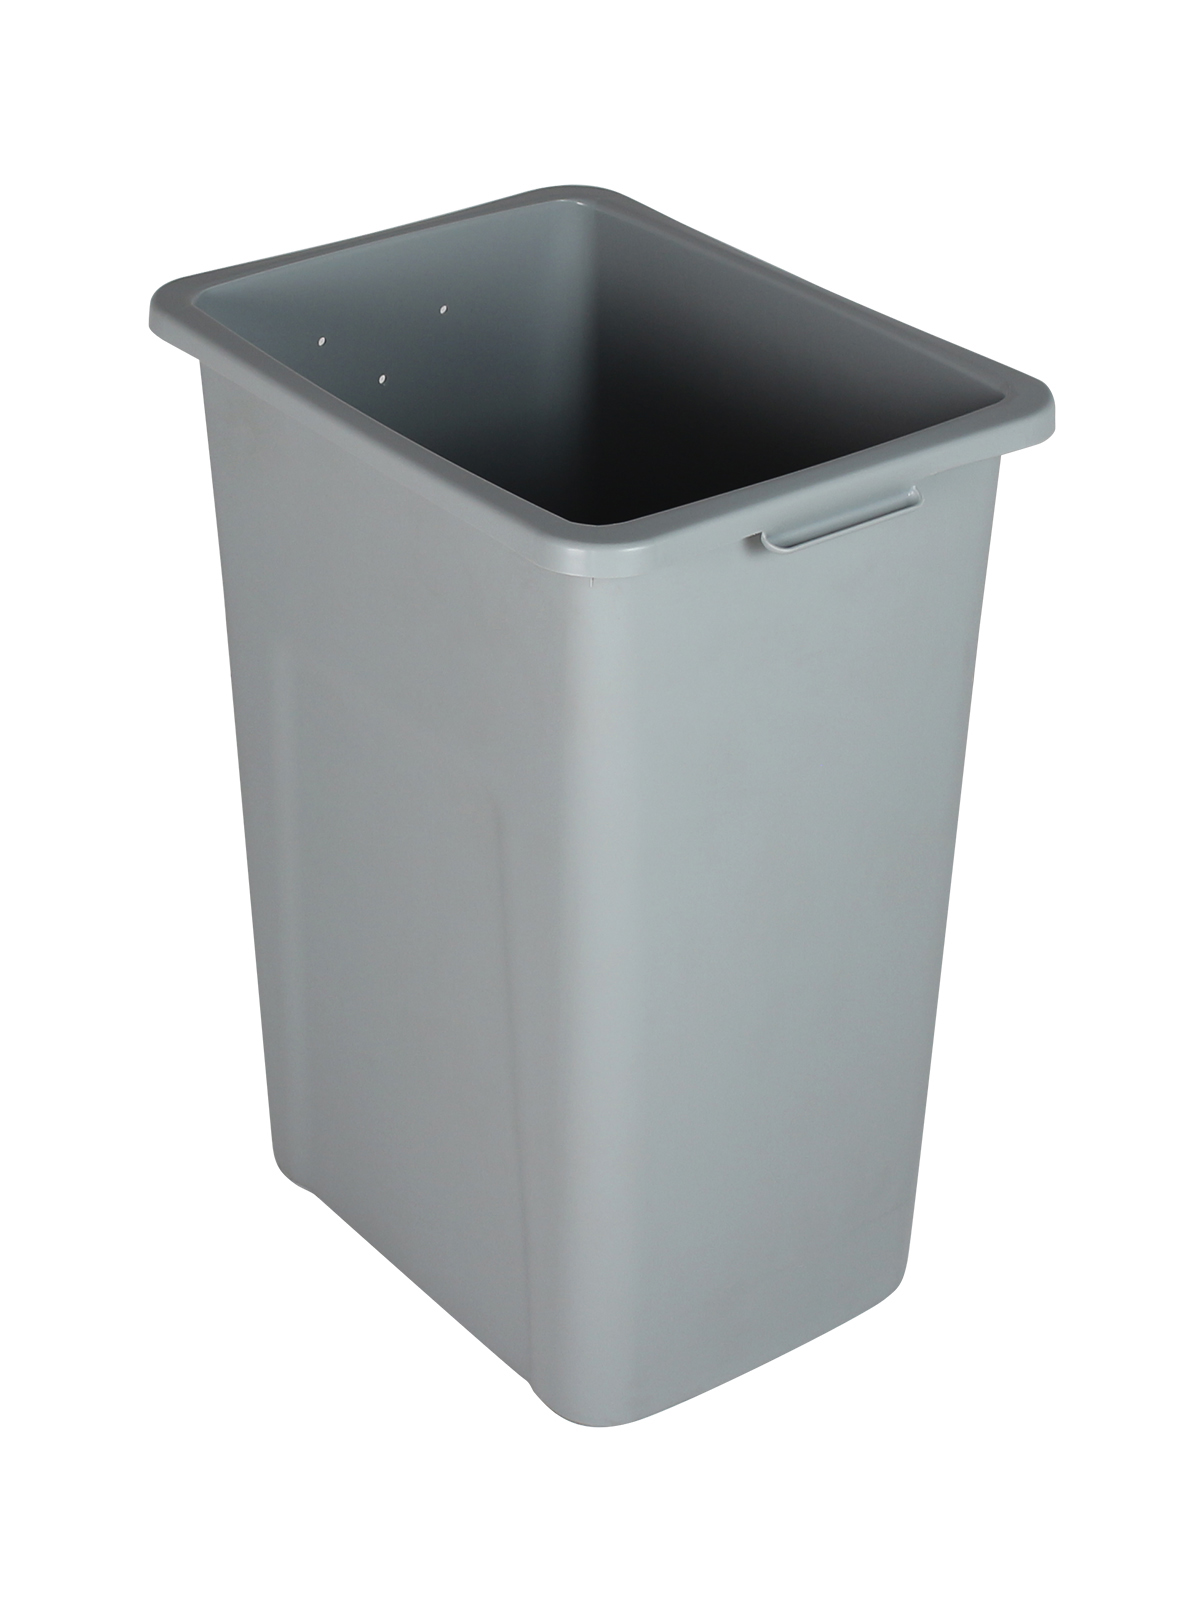 WASTE WATCHER® XL - 27 - PREDRILLED ON 2 SIDES & 1 END - EXECUTIVE GREY